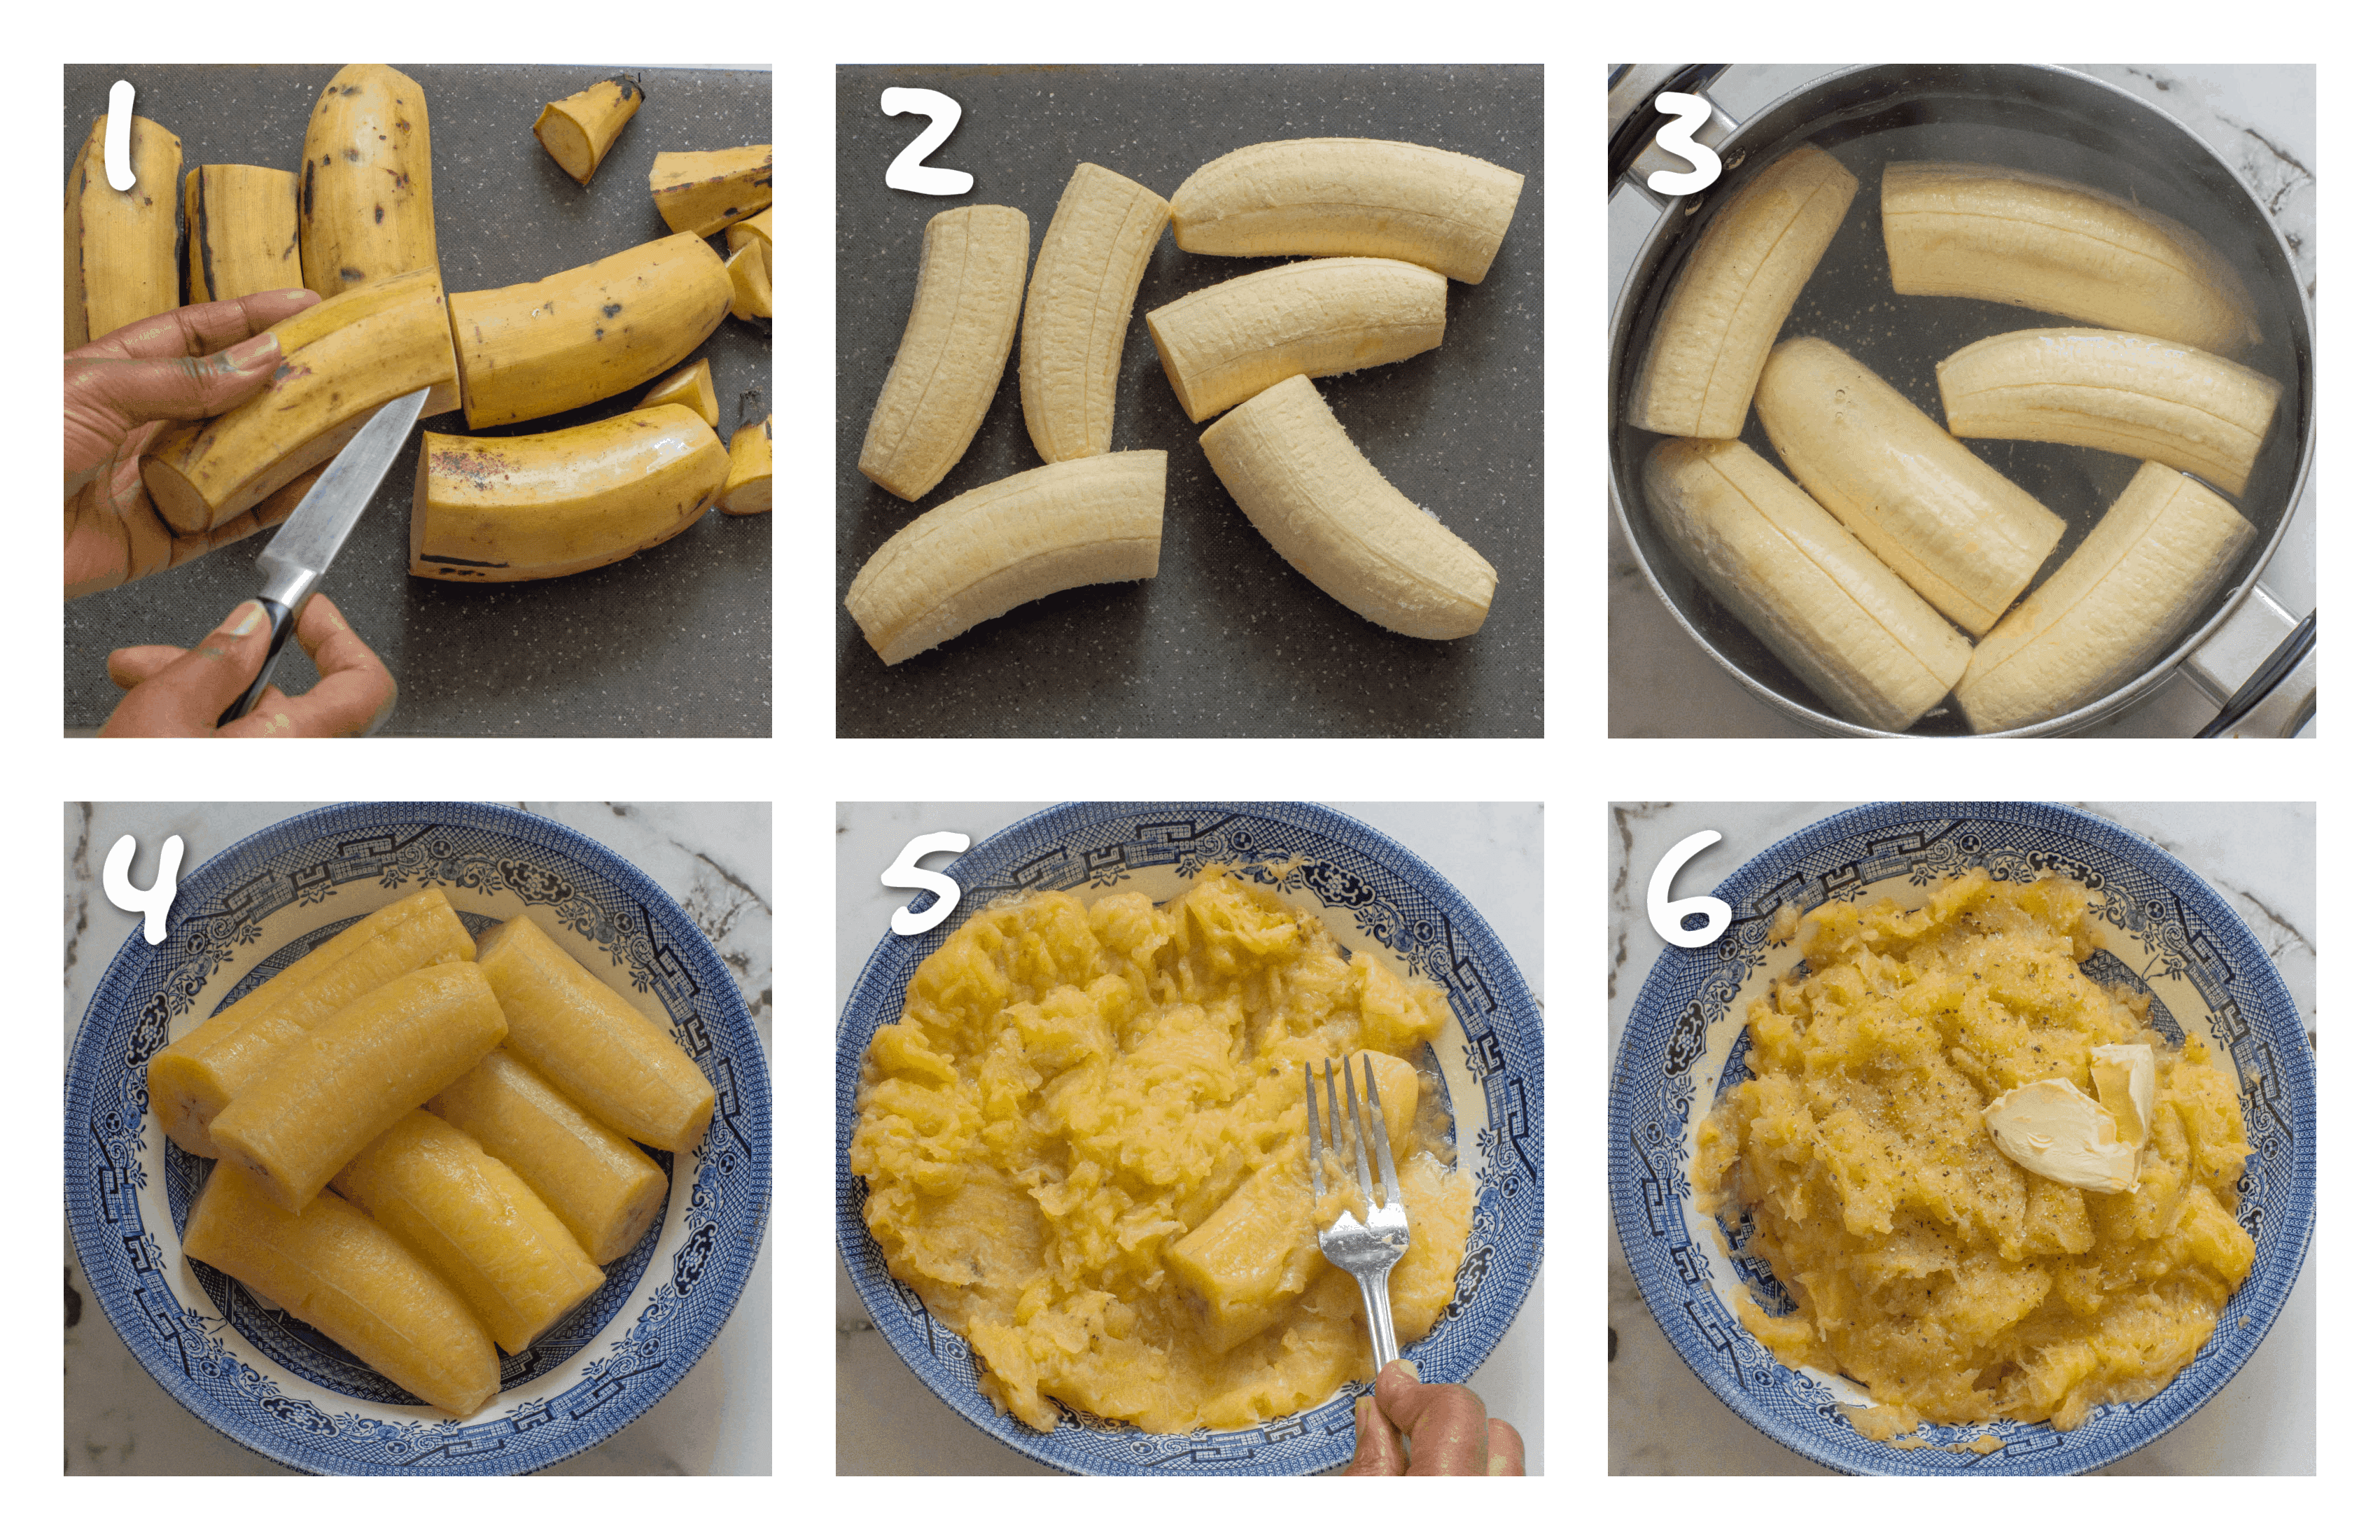 steps1-6 the process of mashing plantain